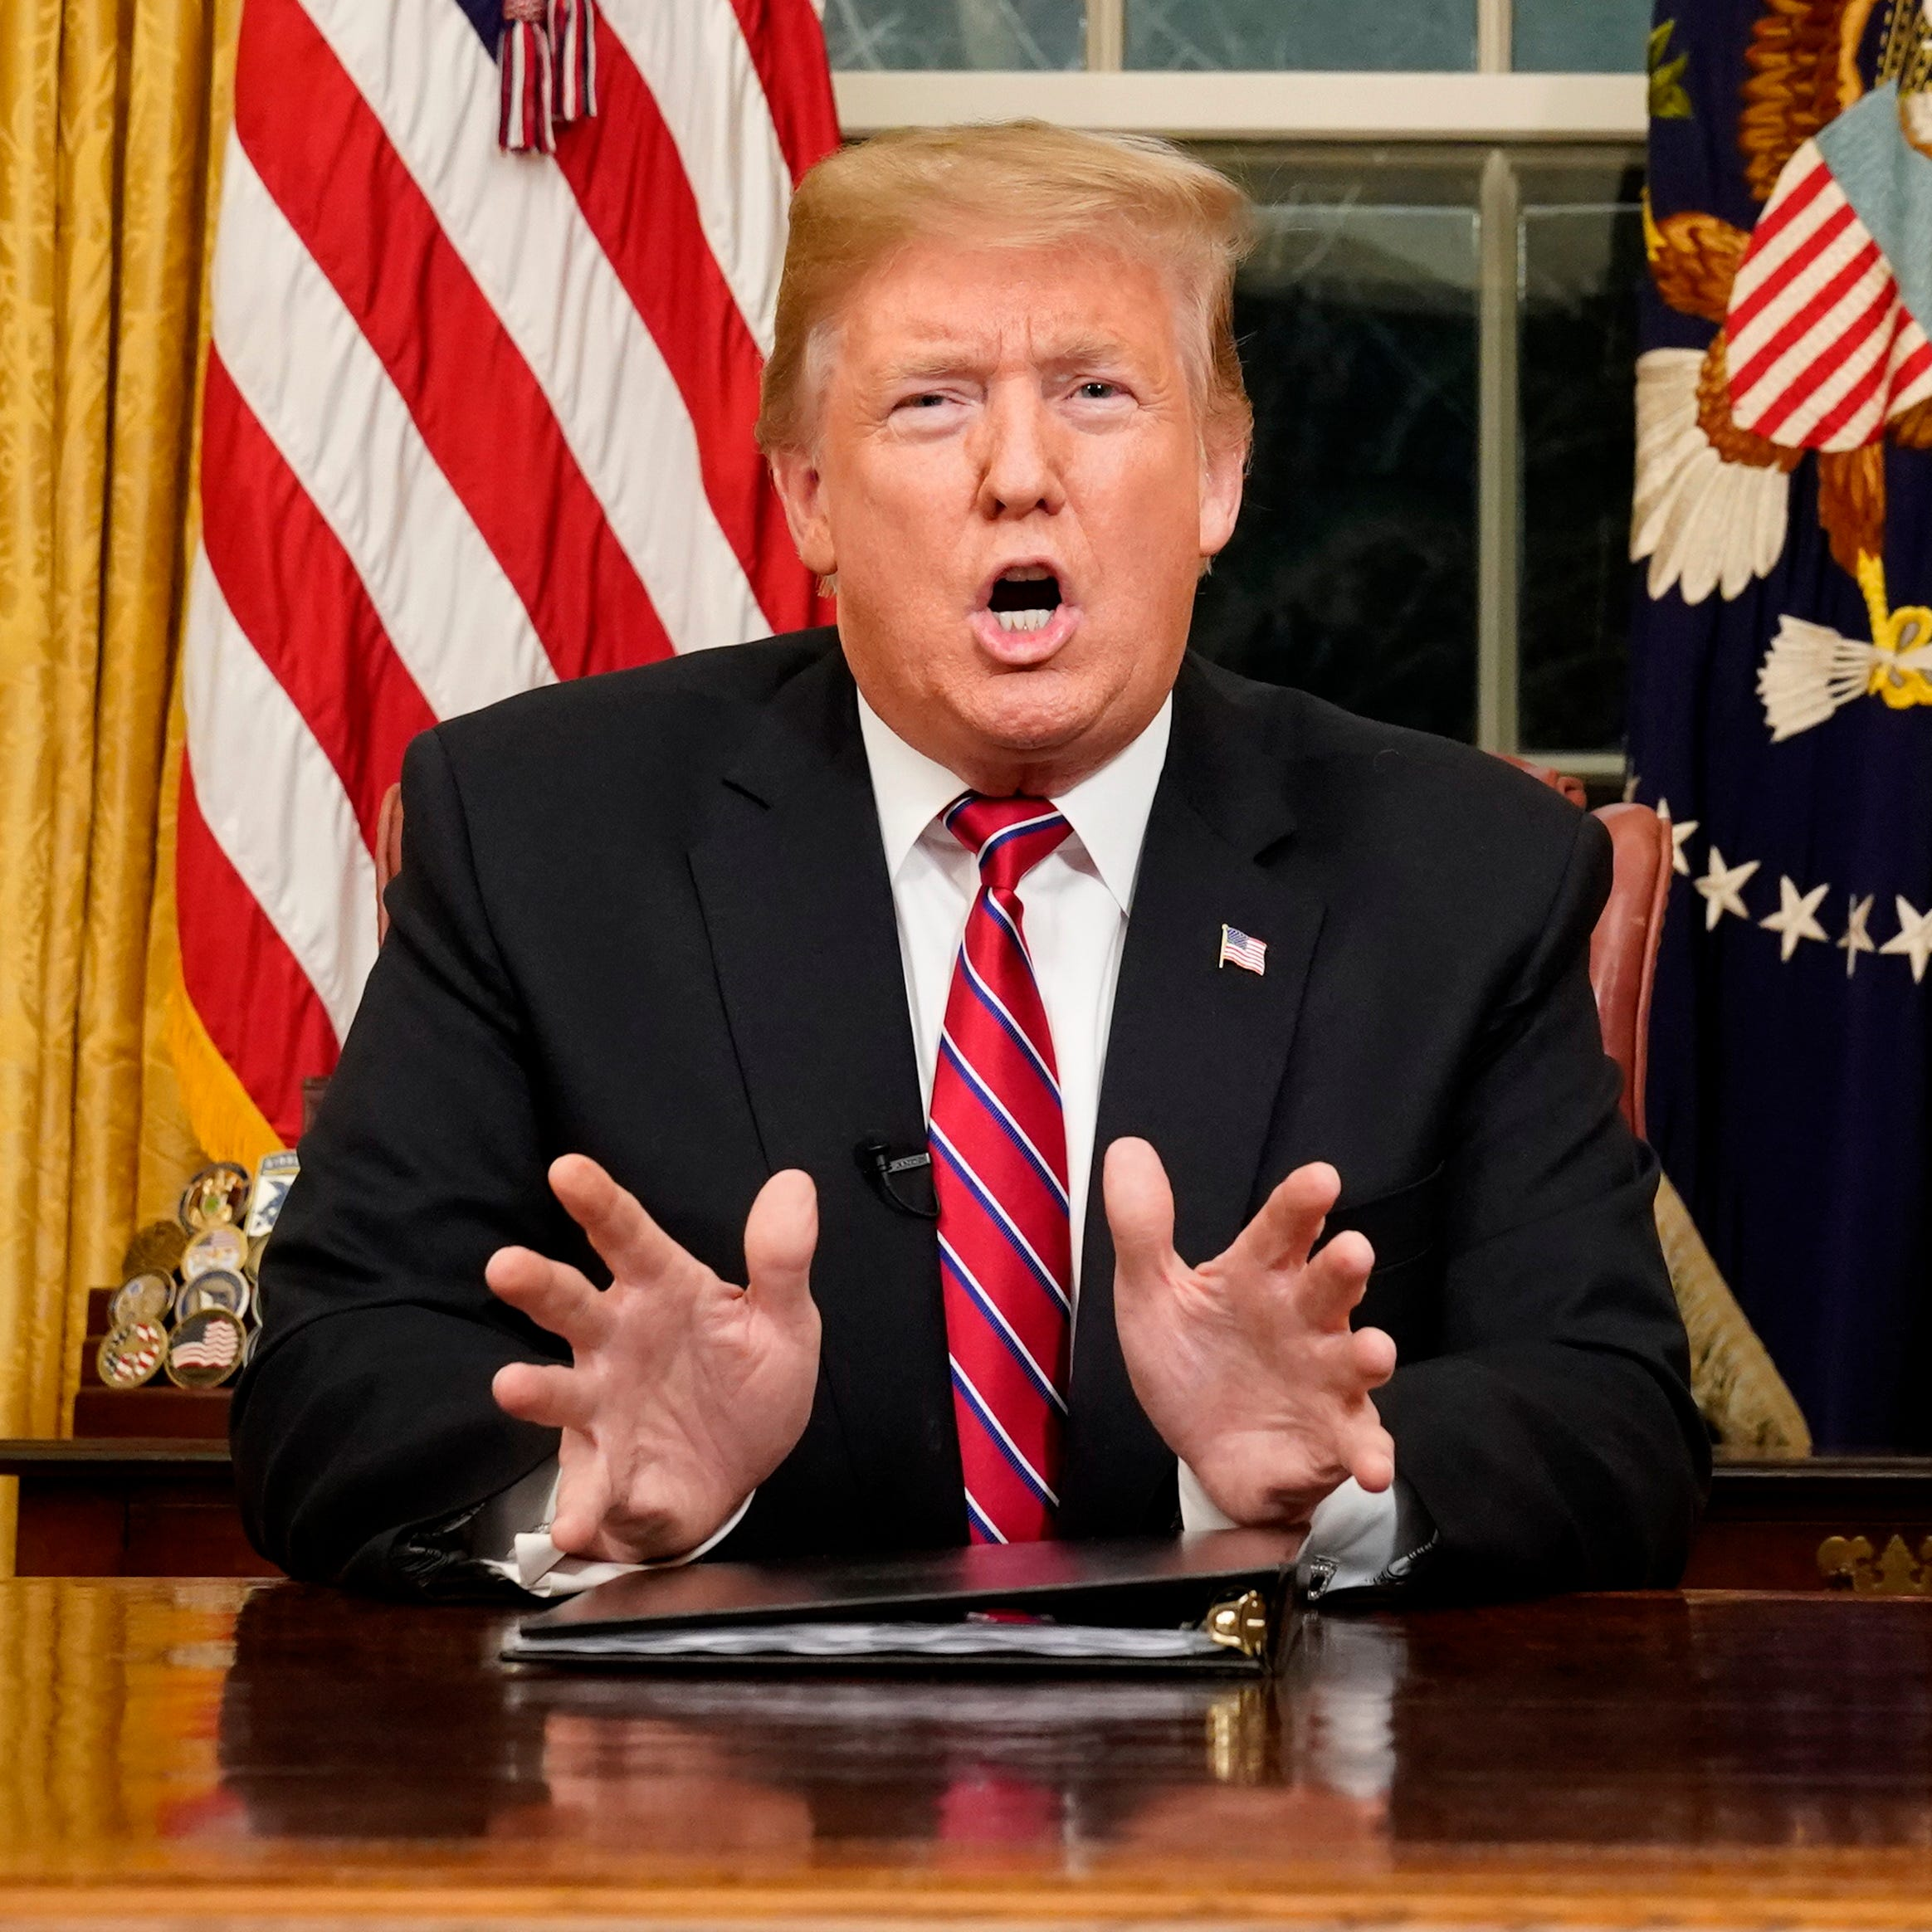 President Donald Trump speaks from the Oval Office of the White House as he gives a prime-time address about border security on Jan. 8, 2018.